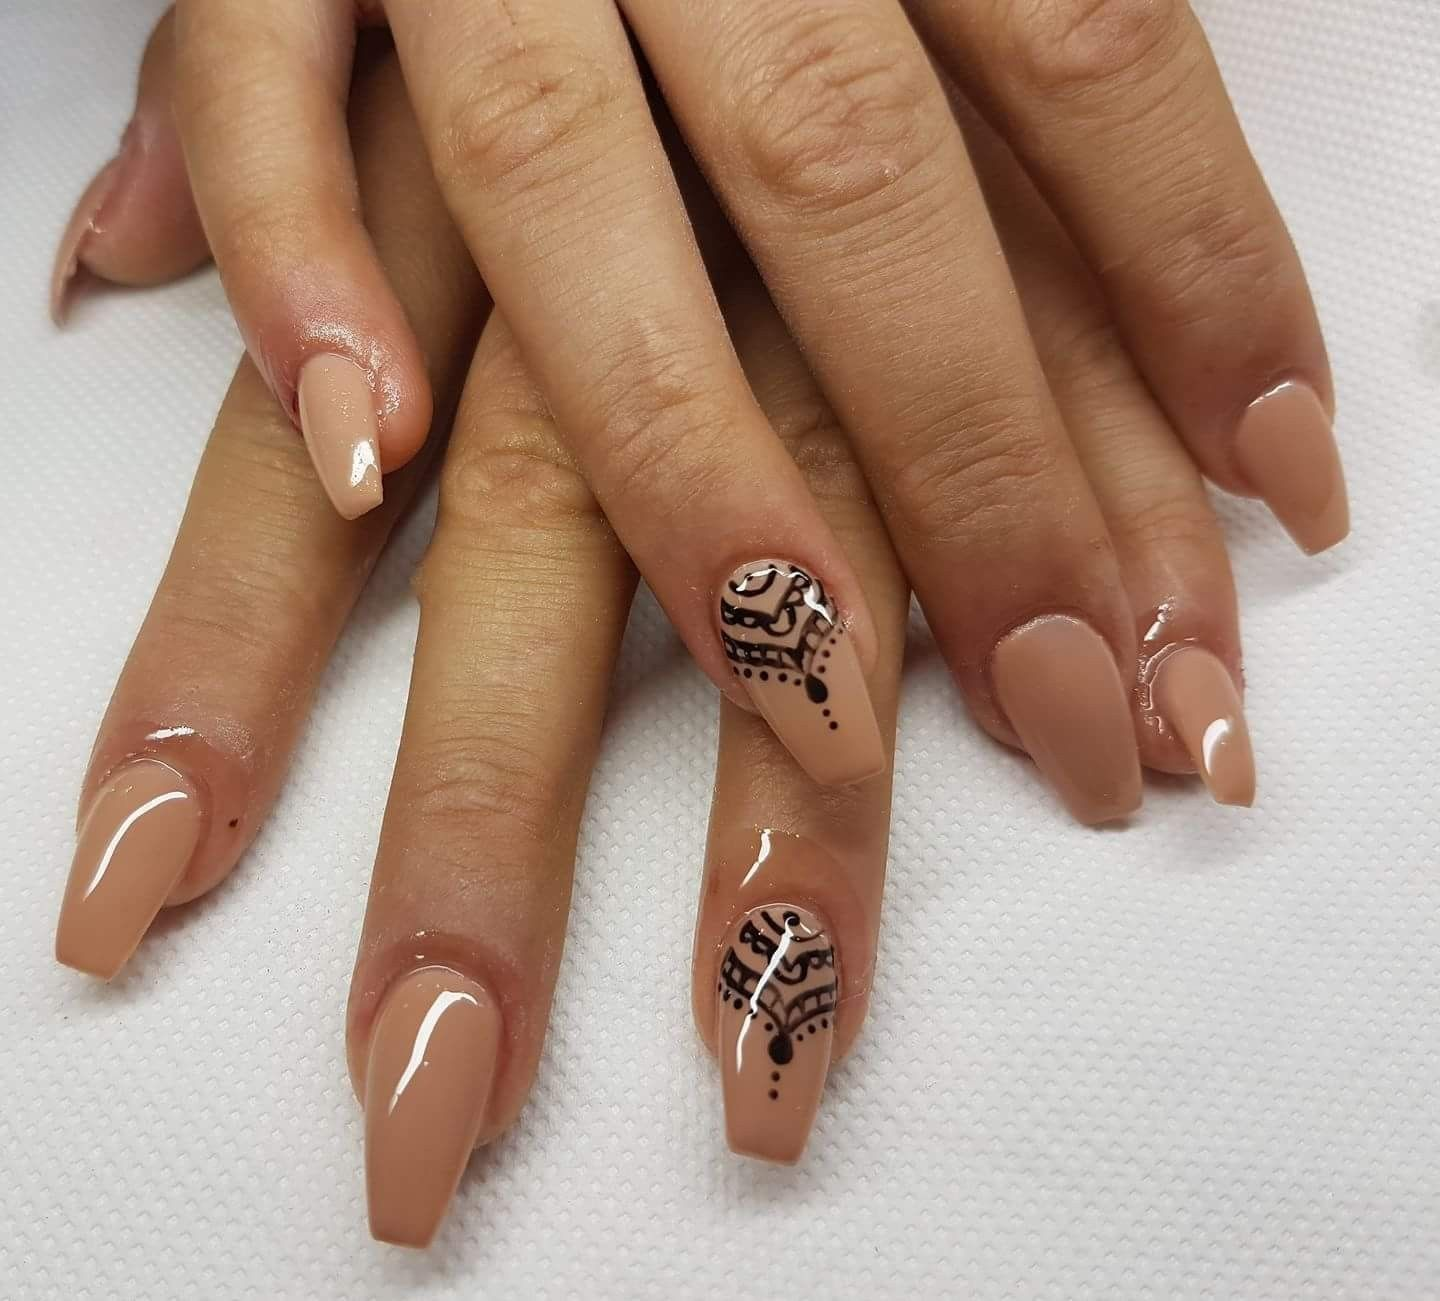 Pin By Ana Maria Berneanu On Nails Pinterest Nail Trends And Makeup